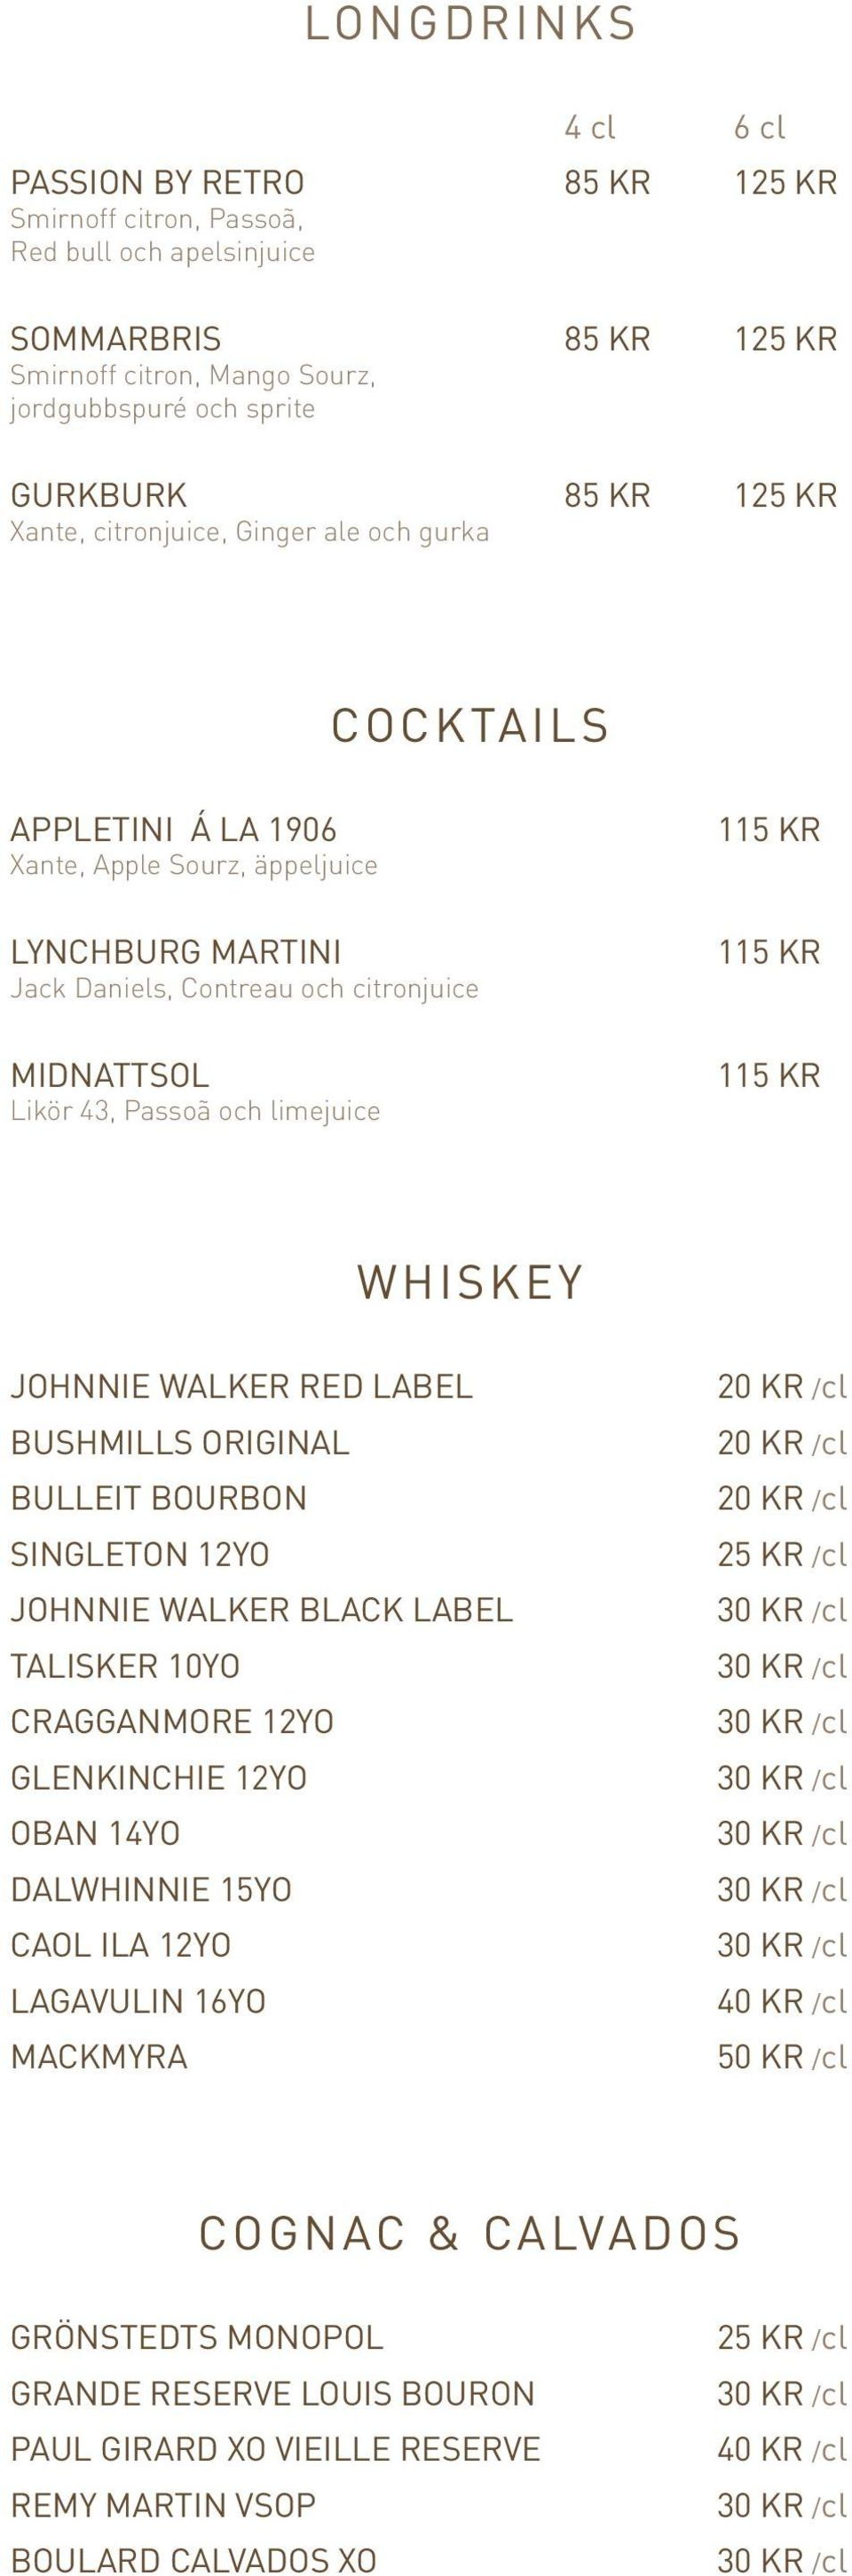 limejuice 115 KR 115 KR 115 KR WHISKEY JOHNNIE WALKER RED LABEL BUSHMILLS ORIGINAL BULLEIT BOURBON SINGLETON 12YO JOHNNIE WALKER BLACK LABEL TALISKER 10YO CRAGGANMORE 12YO GLENKINCHIE 12YO OBAN 14YO